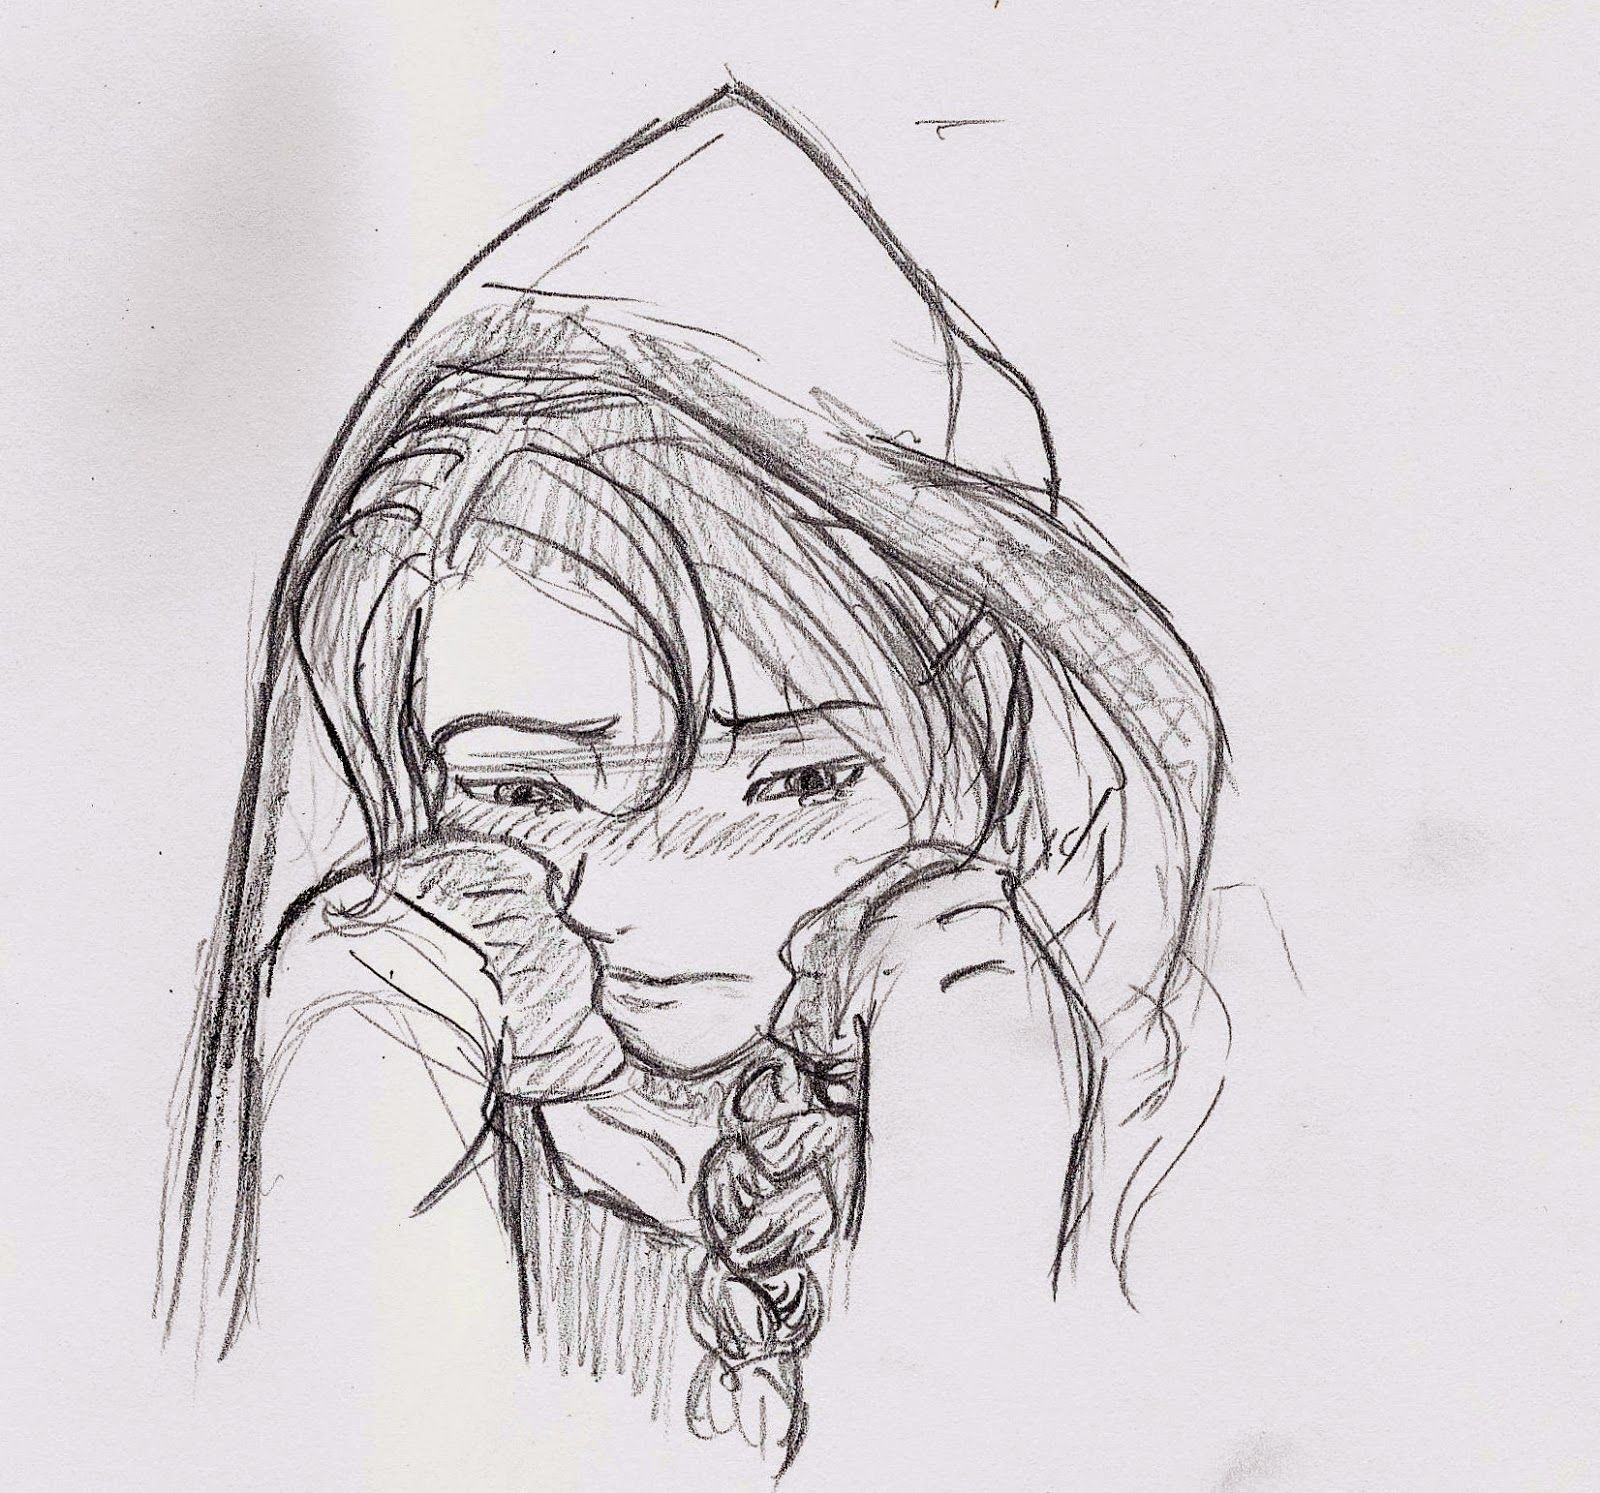 Pencil sketch of girl with hoodie